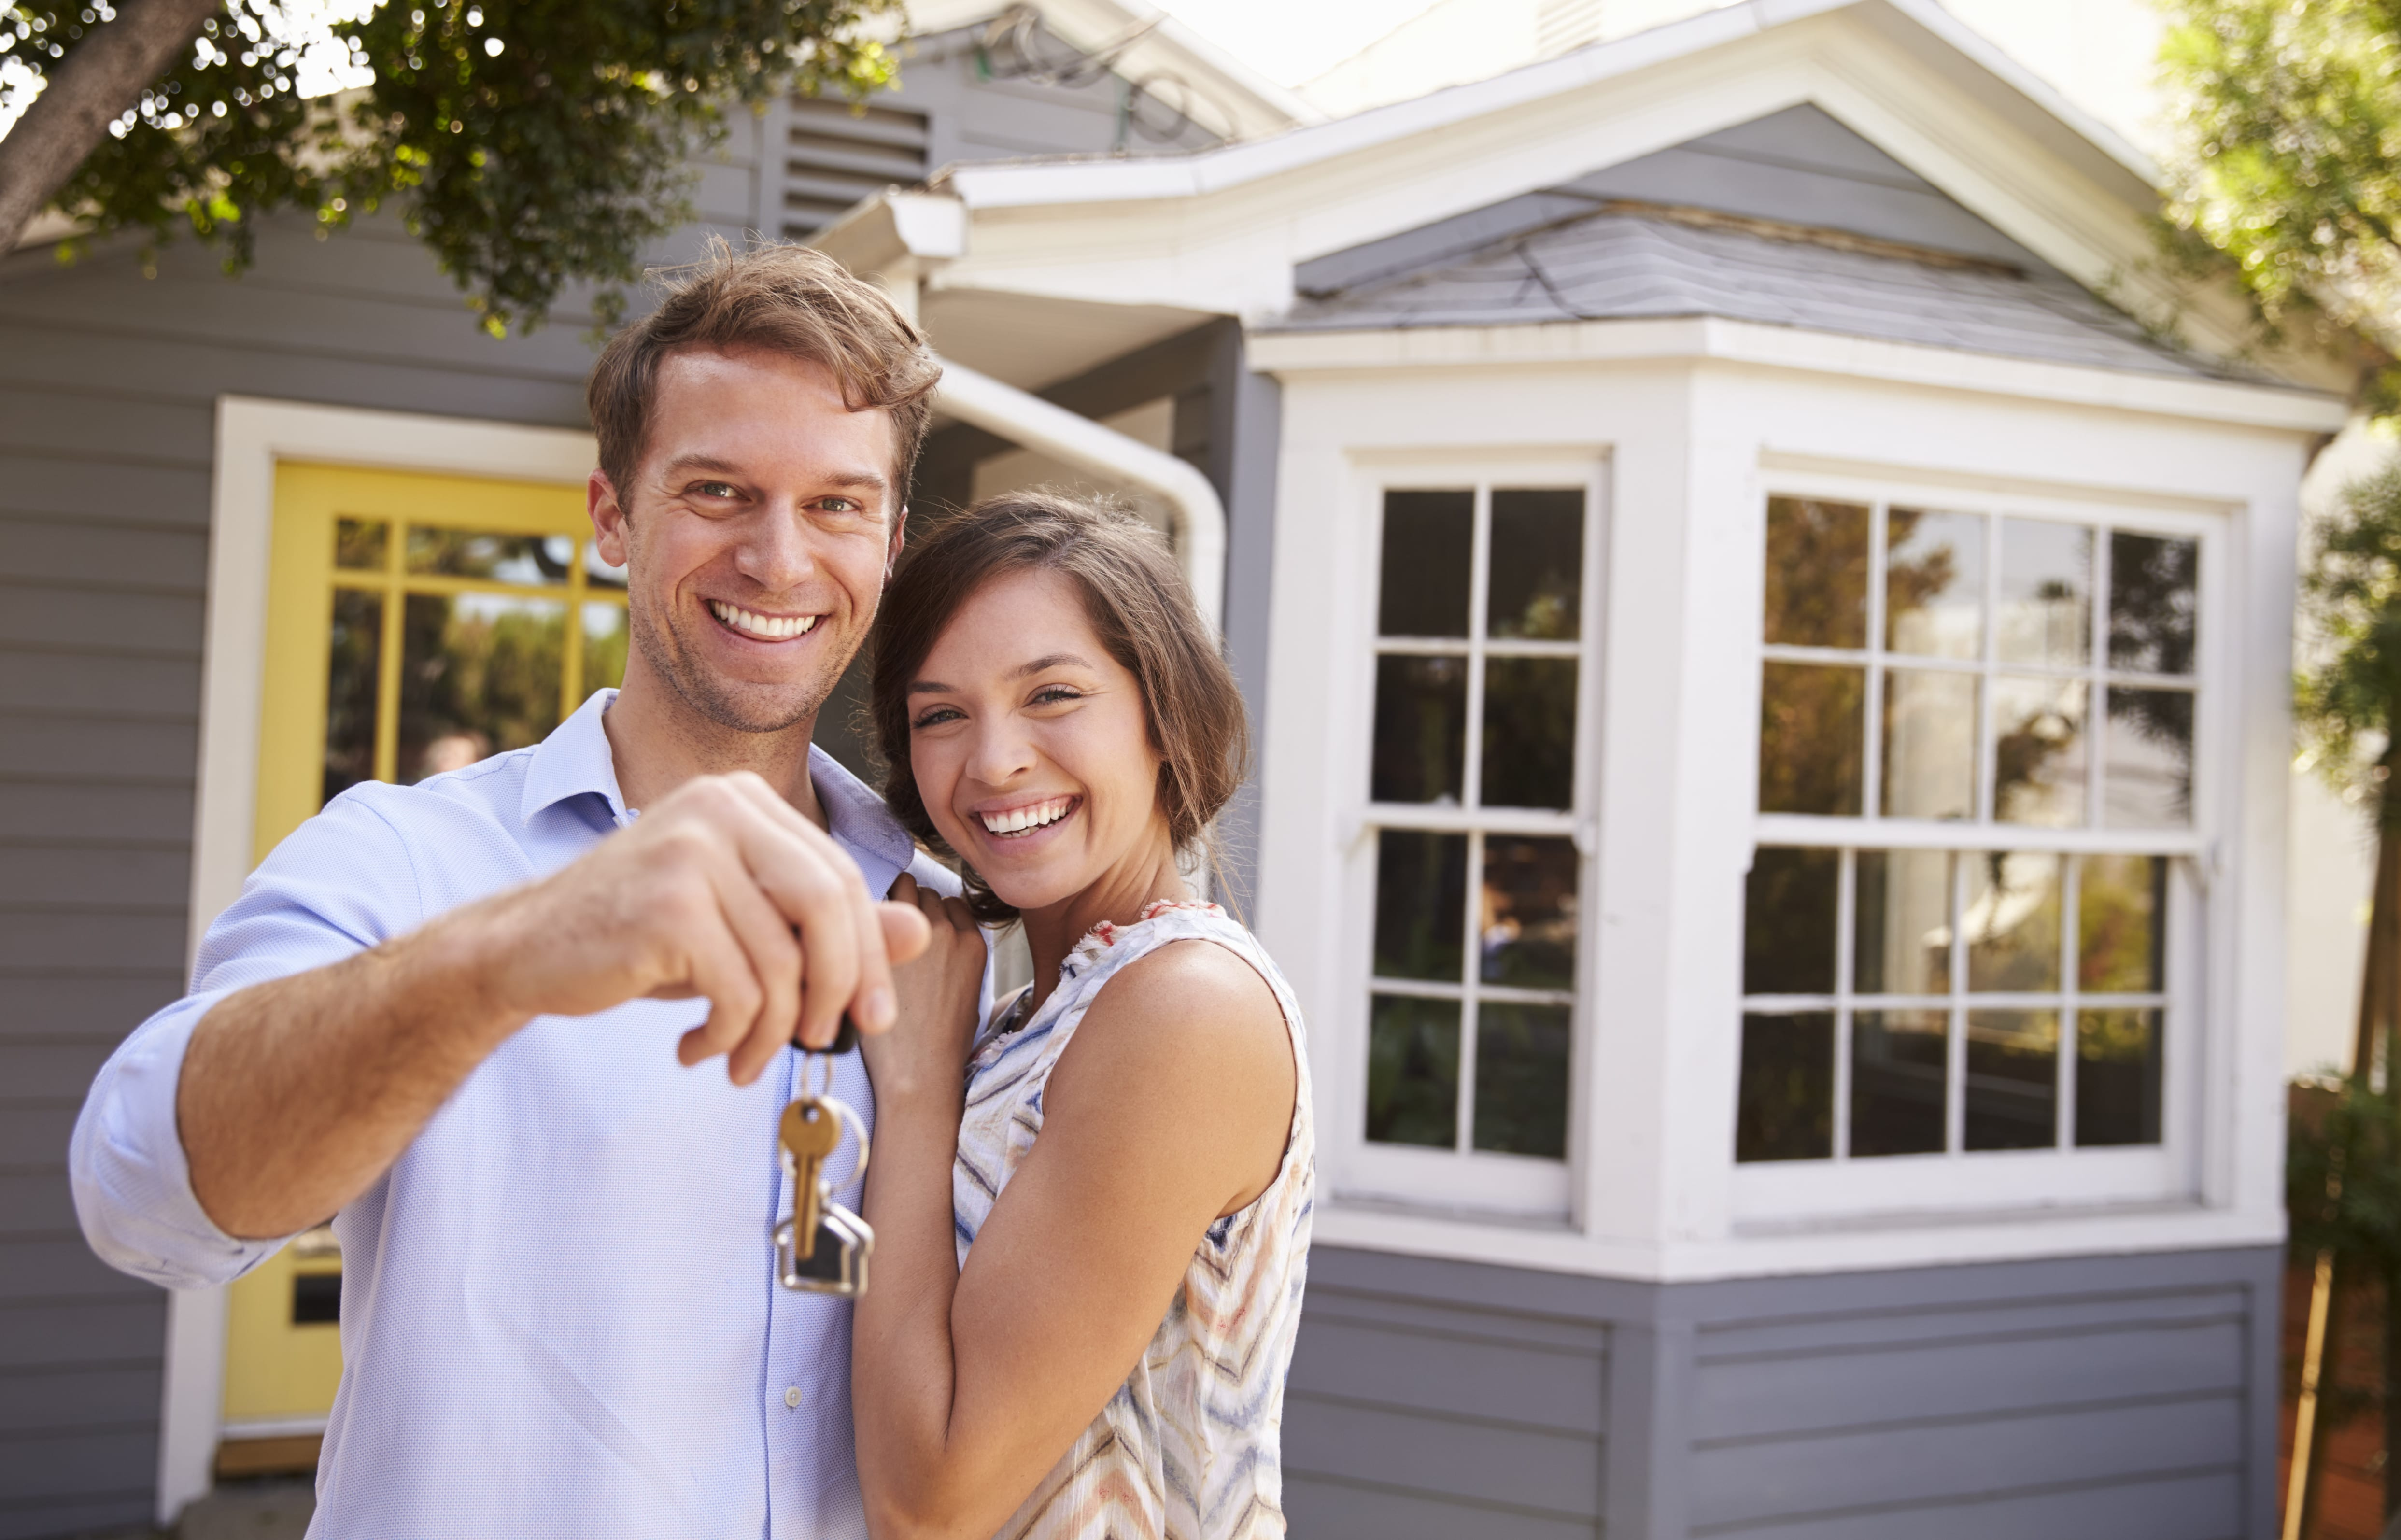 3 Ways to Pay Off Your Mortgage up to 15 Years Early